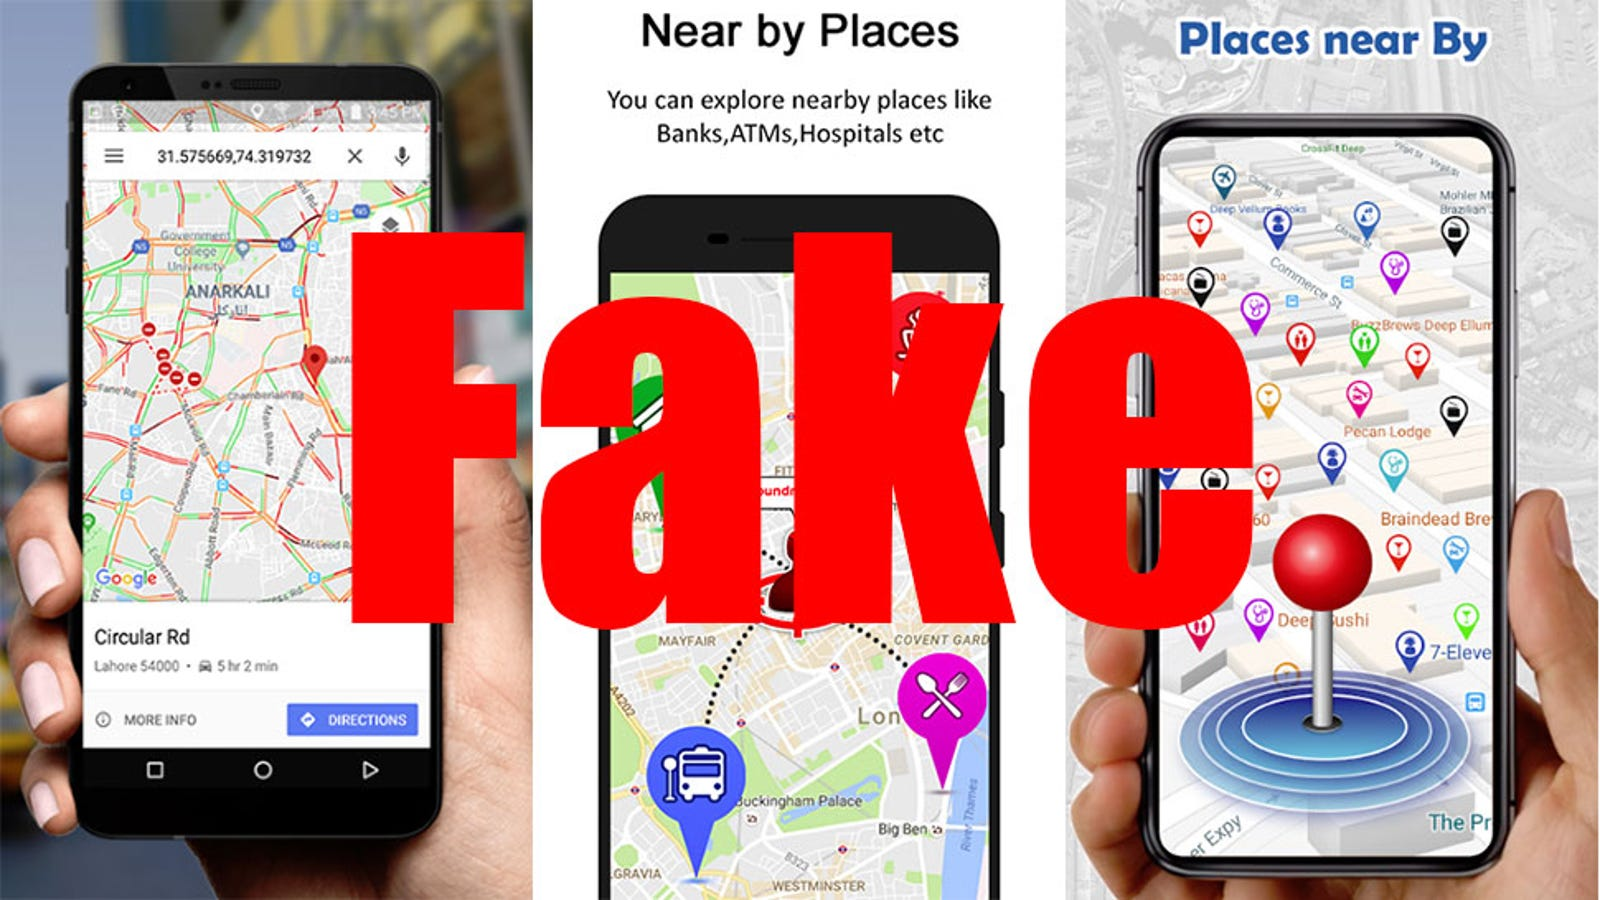 QnA VBage Navigation Apps With Millions of Downloads Exposed as Just Google Maps With Bonus Ads